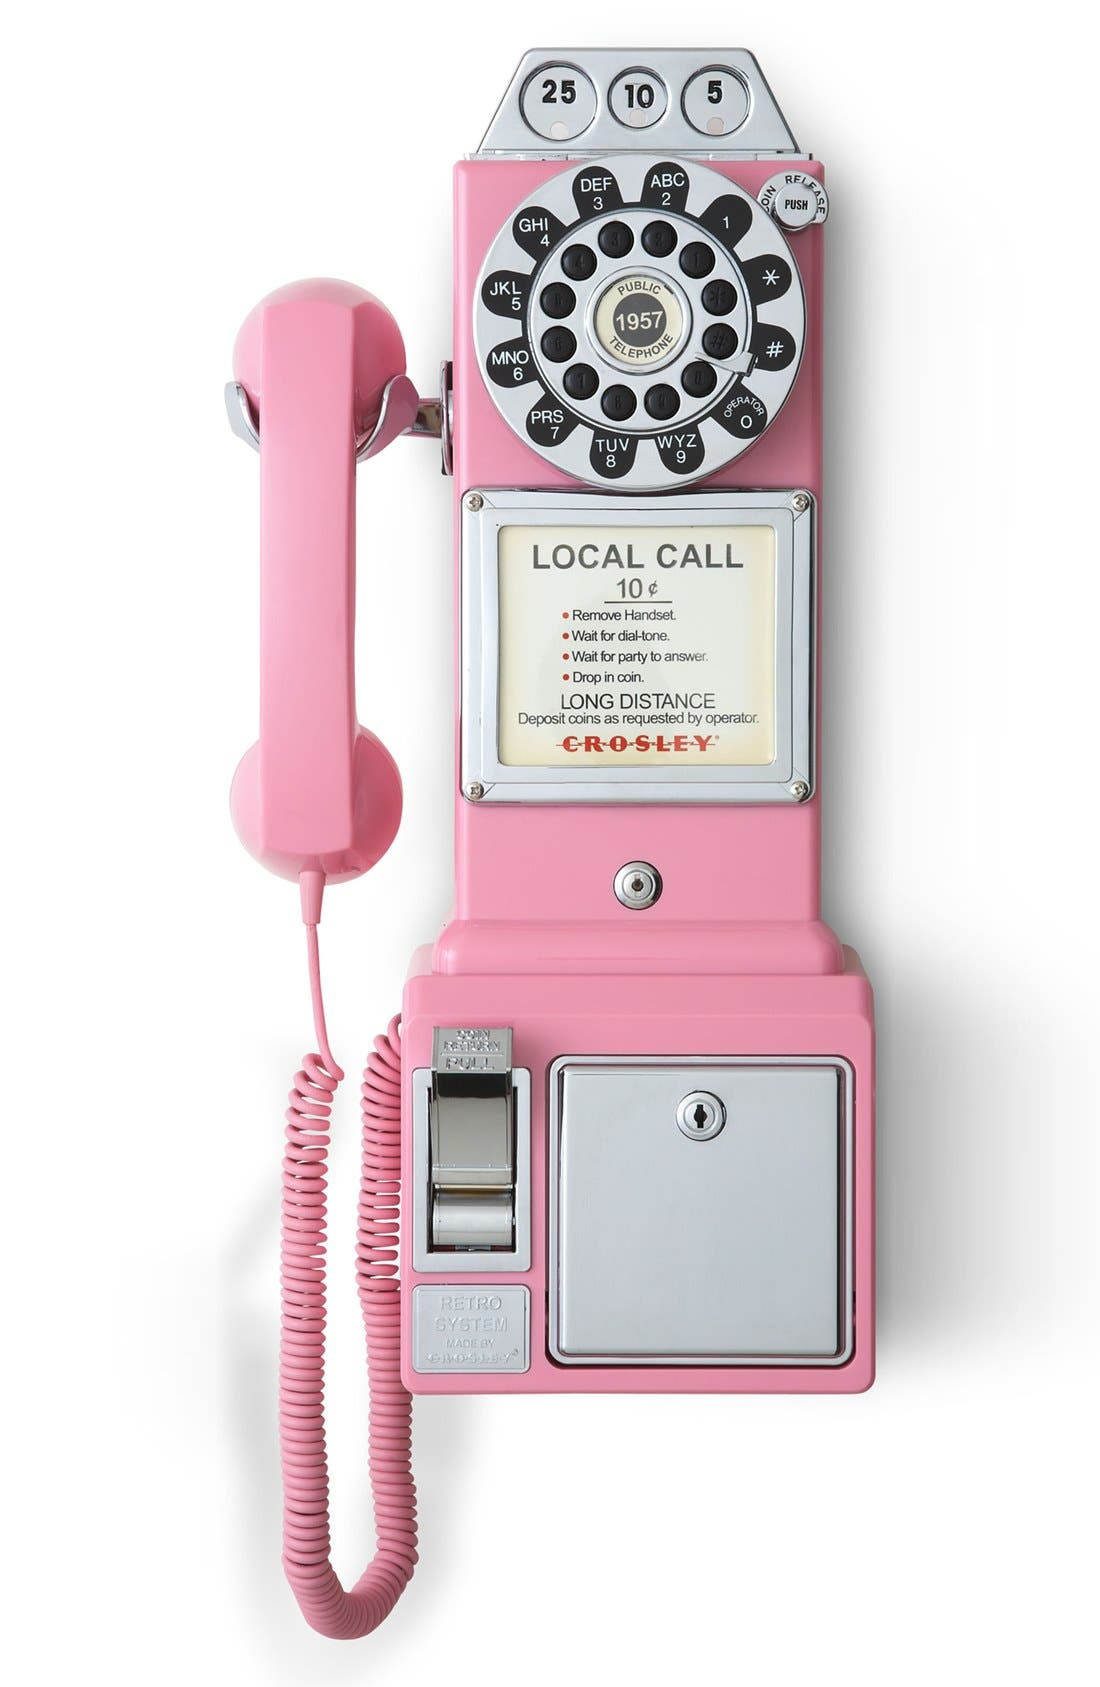 Crosley Radio 'Pay Phone' Wall Phone